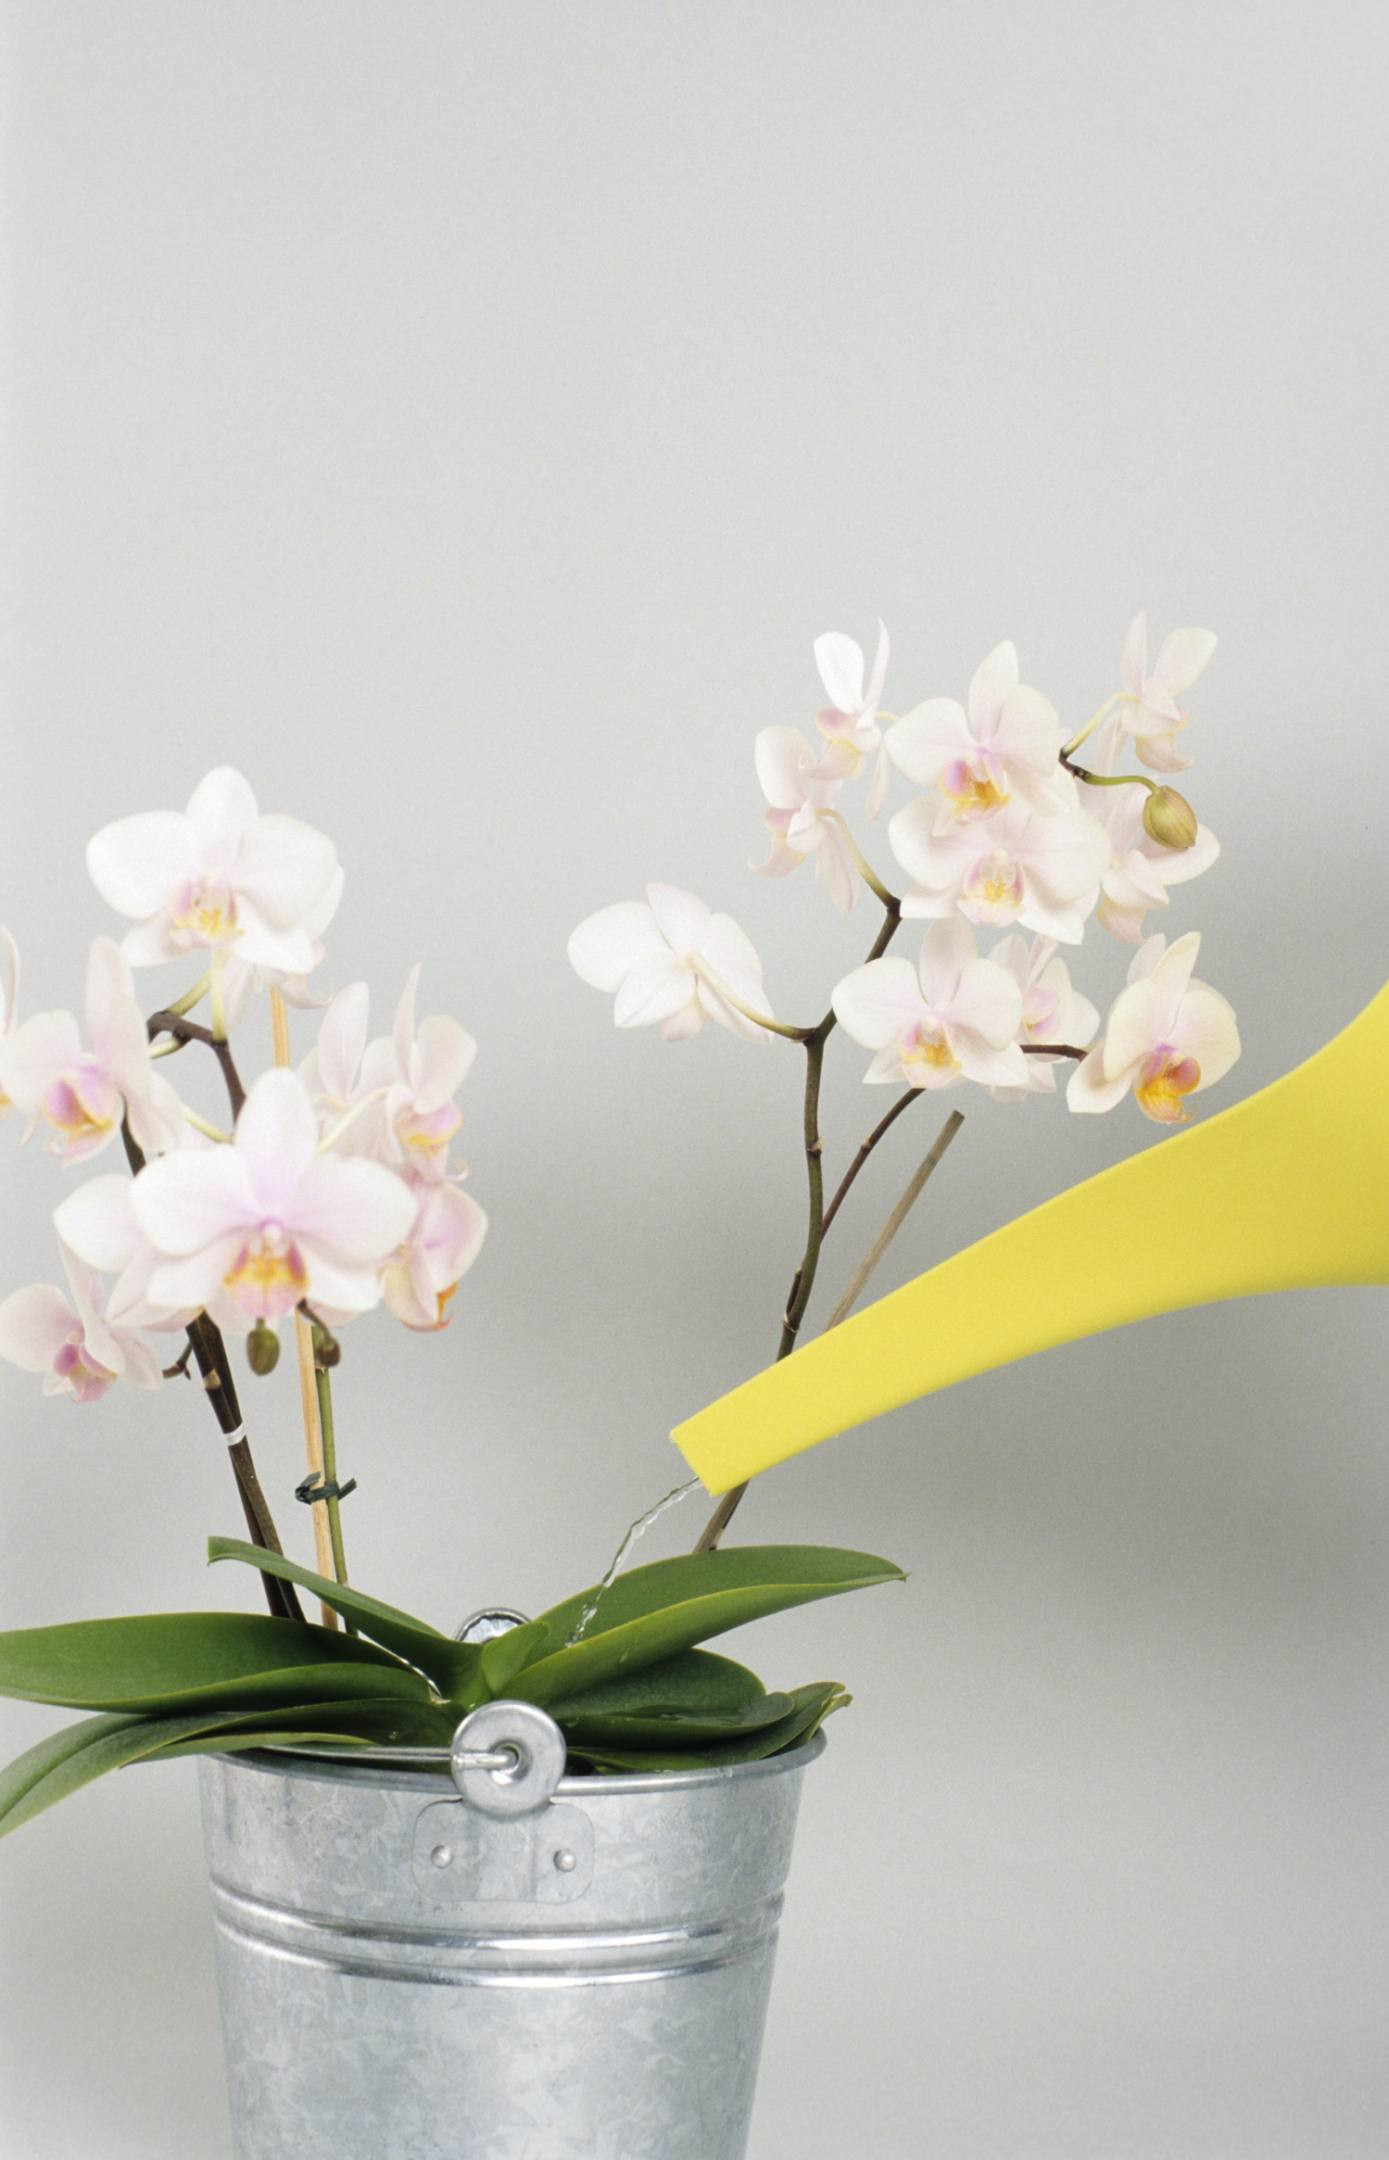 orchidwater 573b2f1d3df78c6bb07a05a2